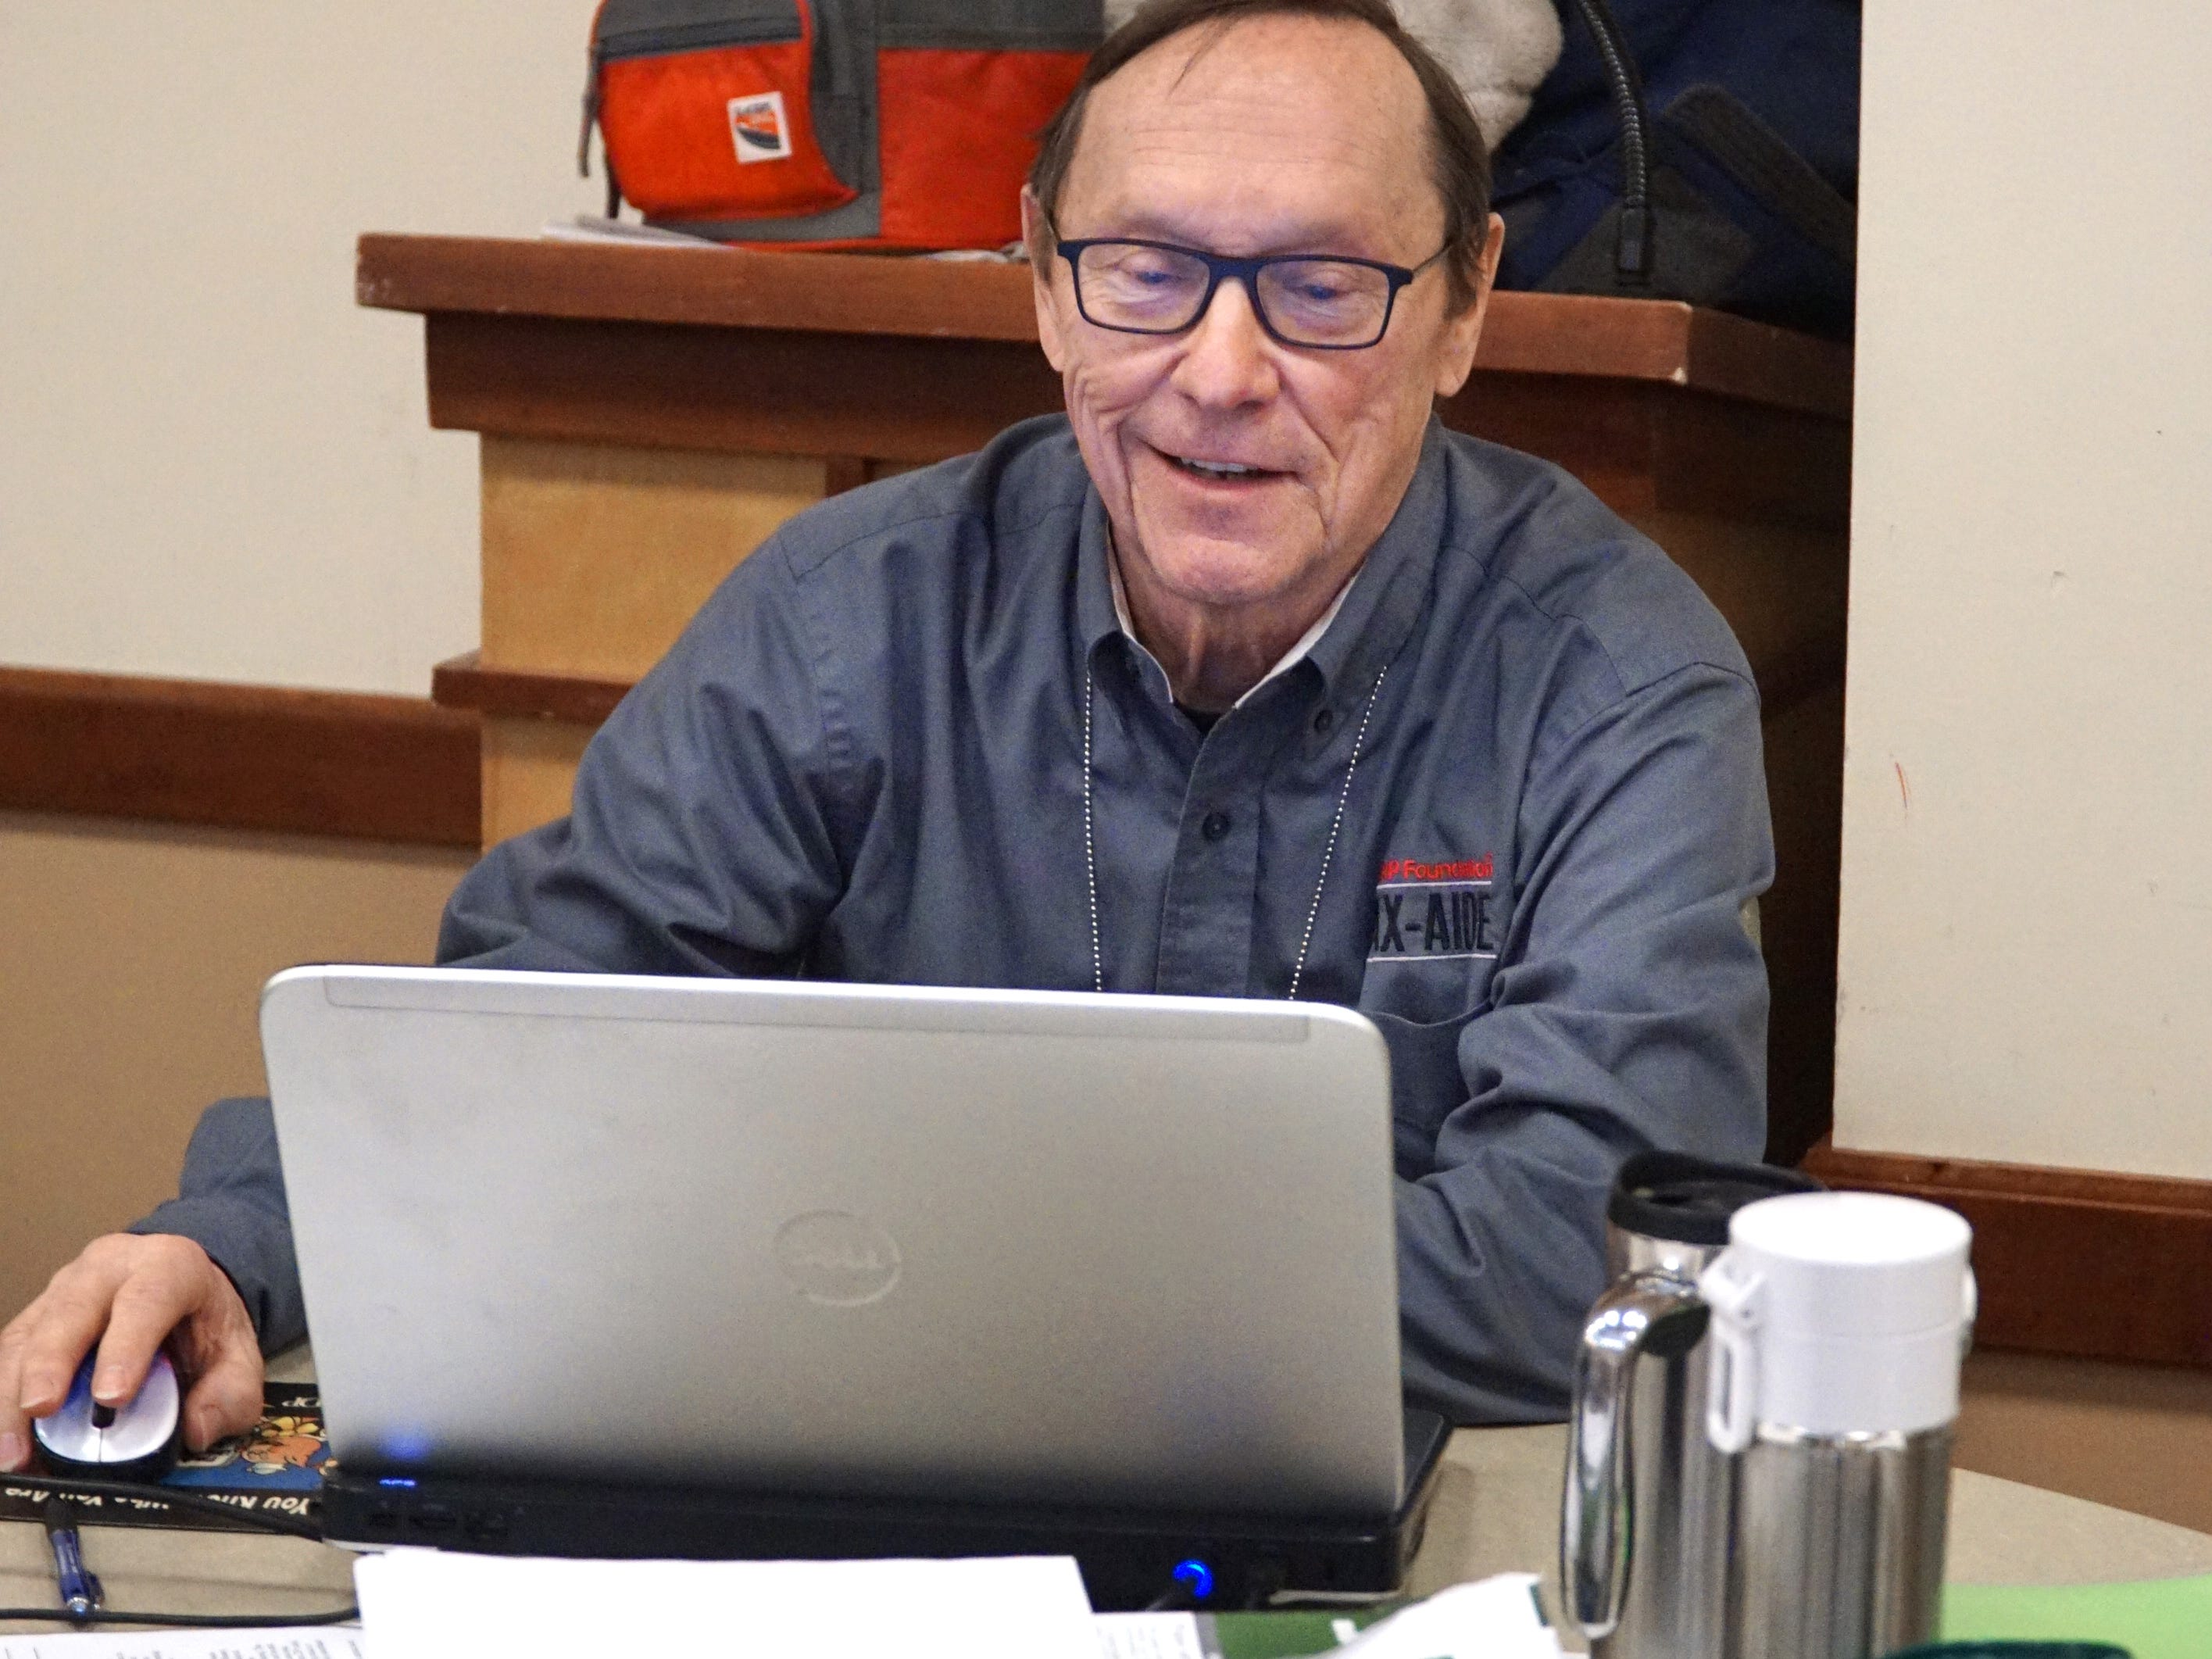 Don Bain was one of many AARP volunteers on hand on March 7 to help tax filers.